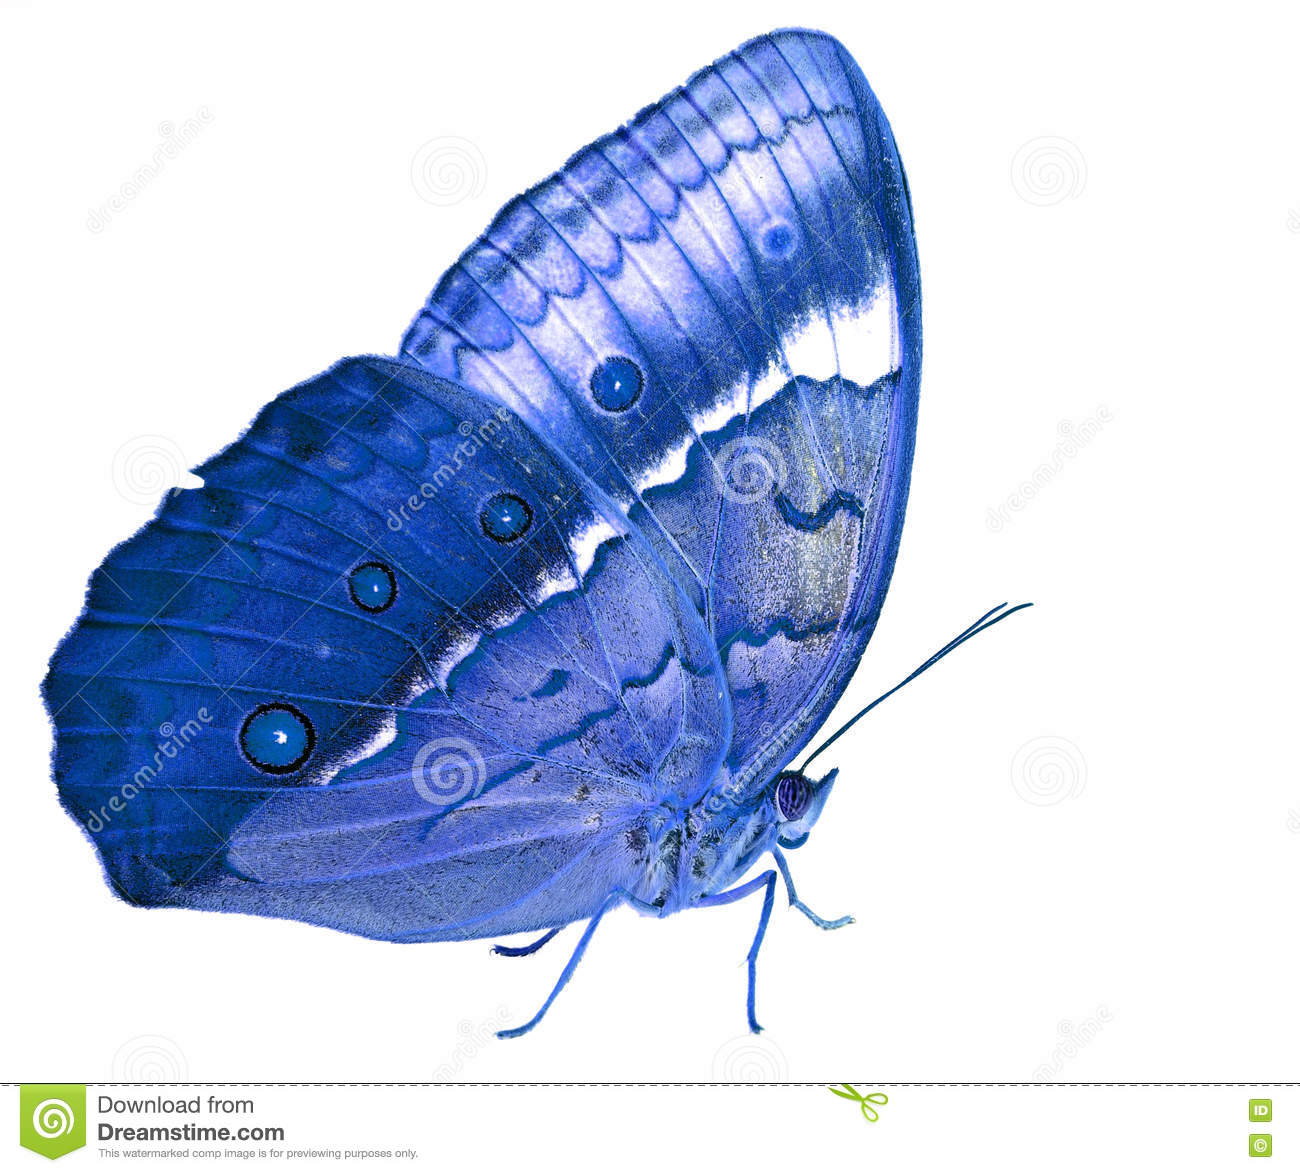 beautiful blue butterfly cambodian junglequeen side view